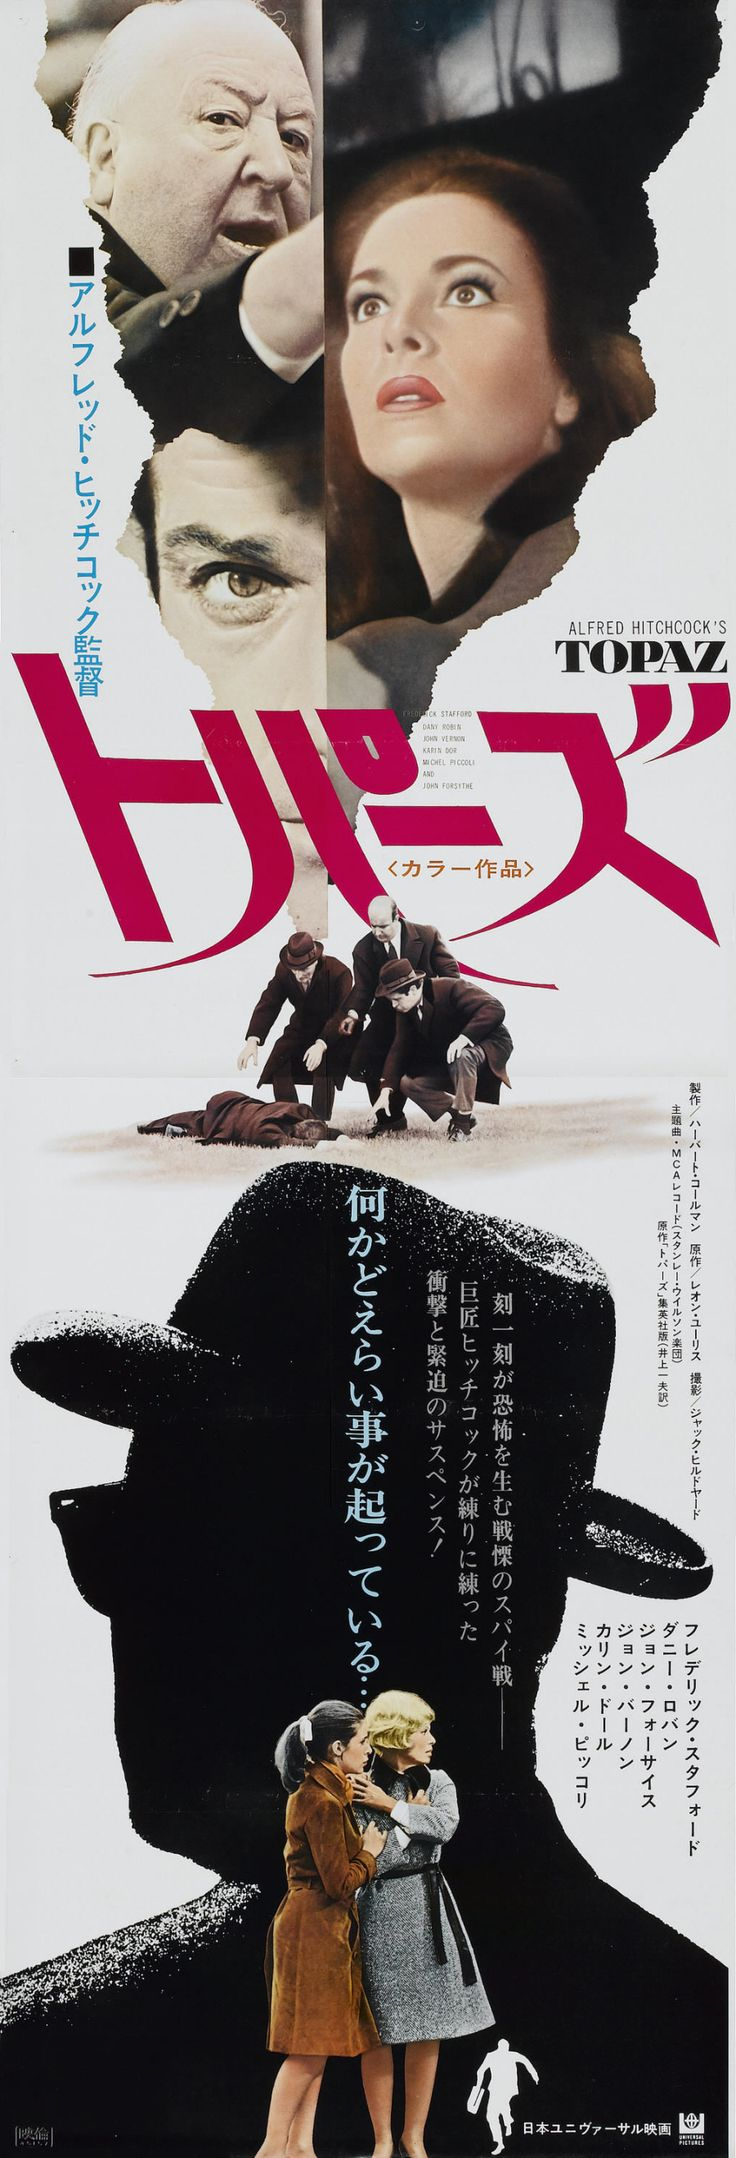 Hitchcock In Japan Film Posters Art Movie Poster Art Japanese Movie Poster